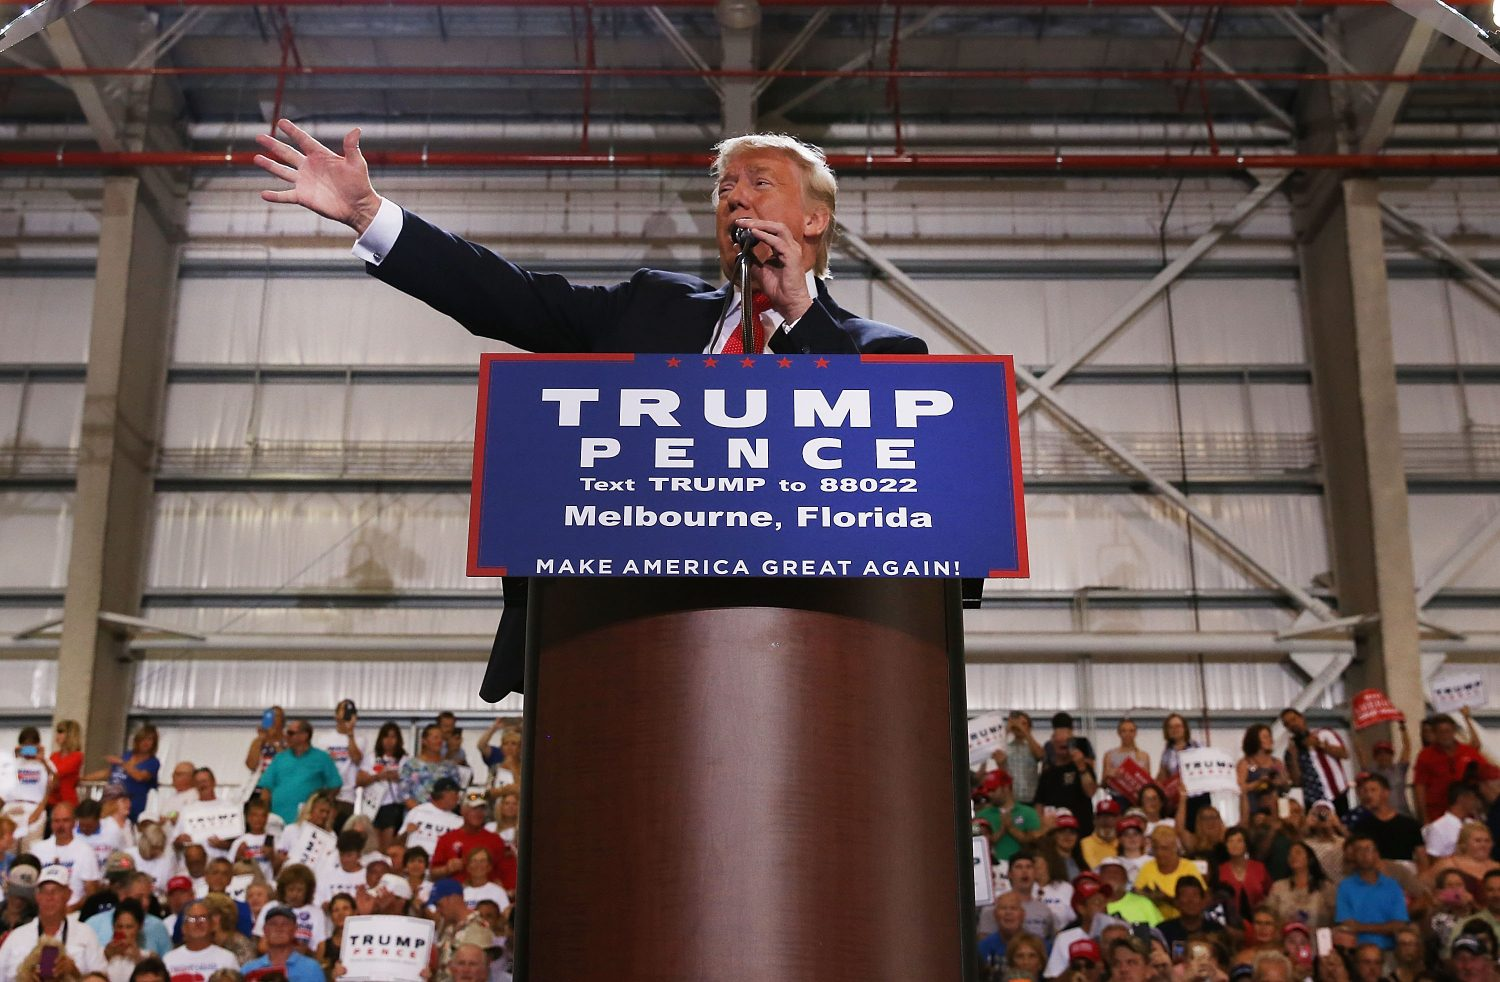 Republican presidential nominee Donald Trump speaks to supporters Tuesday at a Florida airport hangar the day after his first debate with Democratic nominee Hillary Clinton. (Photo by Spencer Platt/Getty Images)